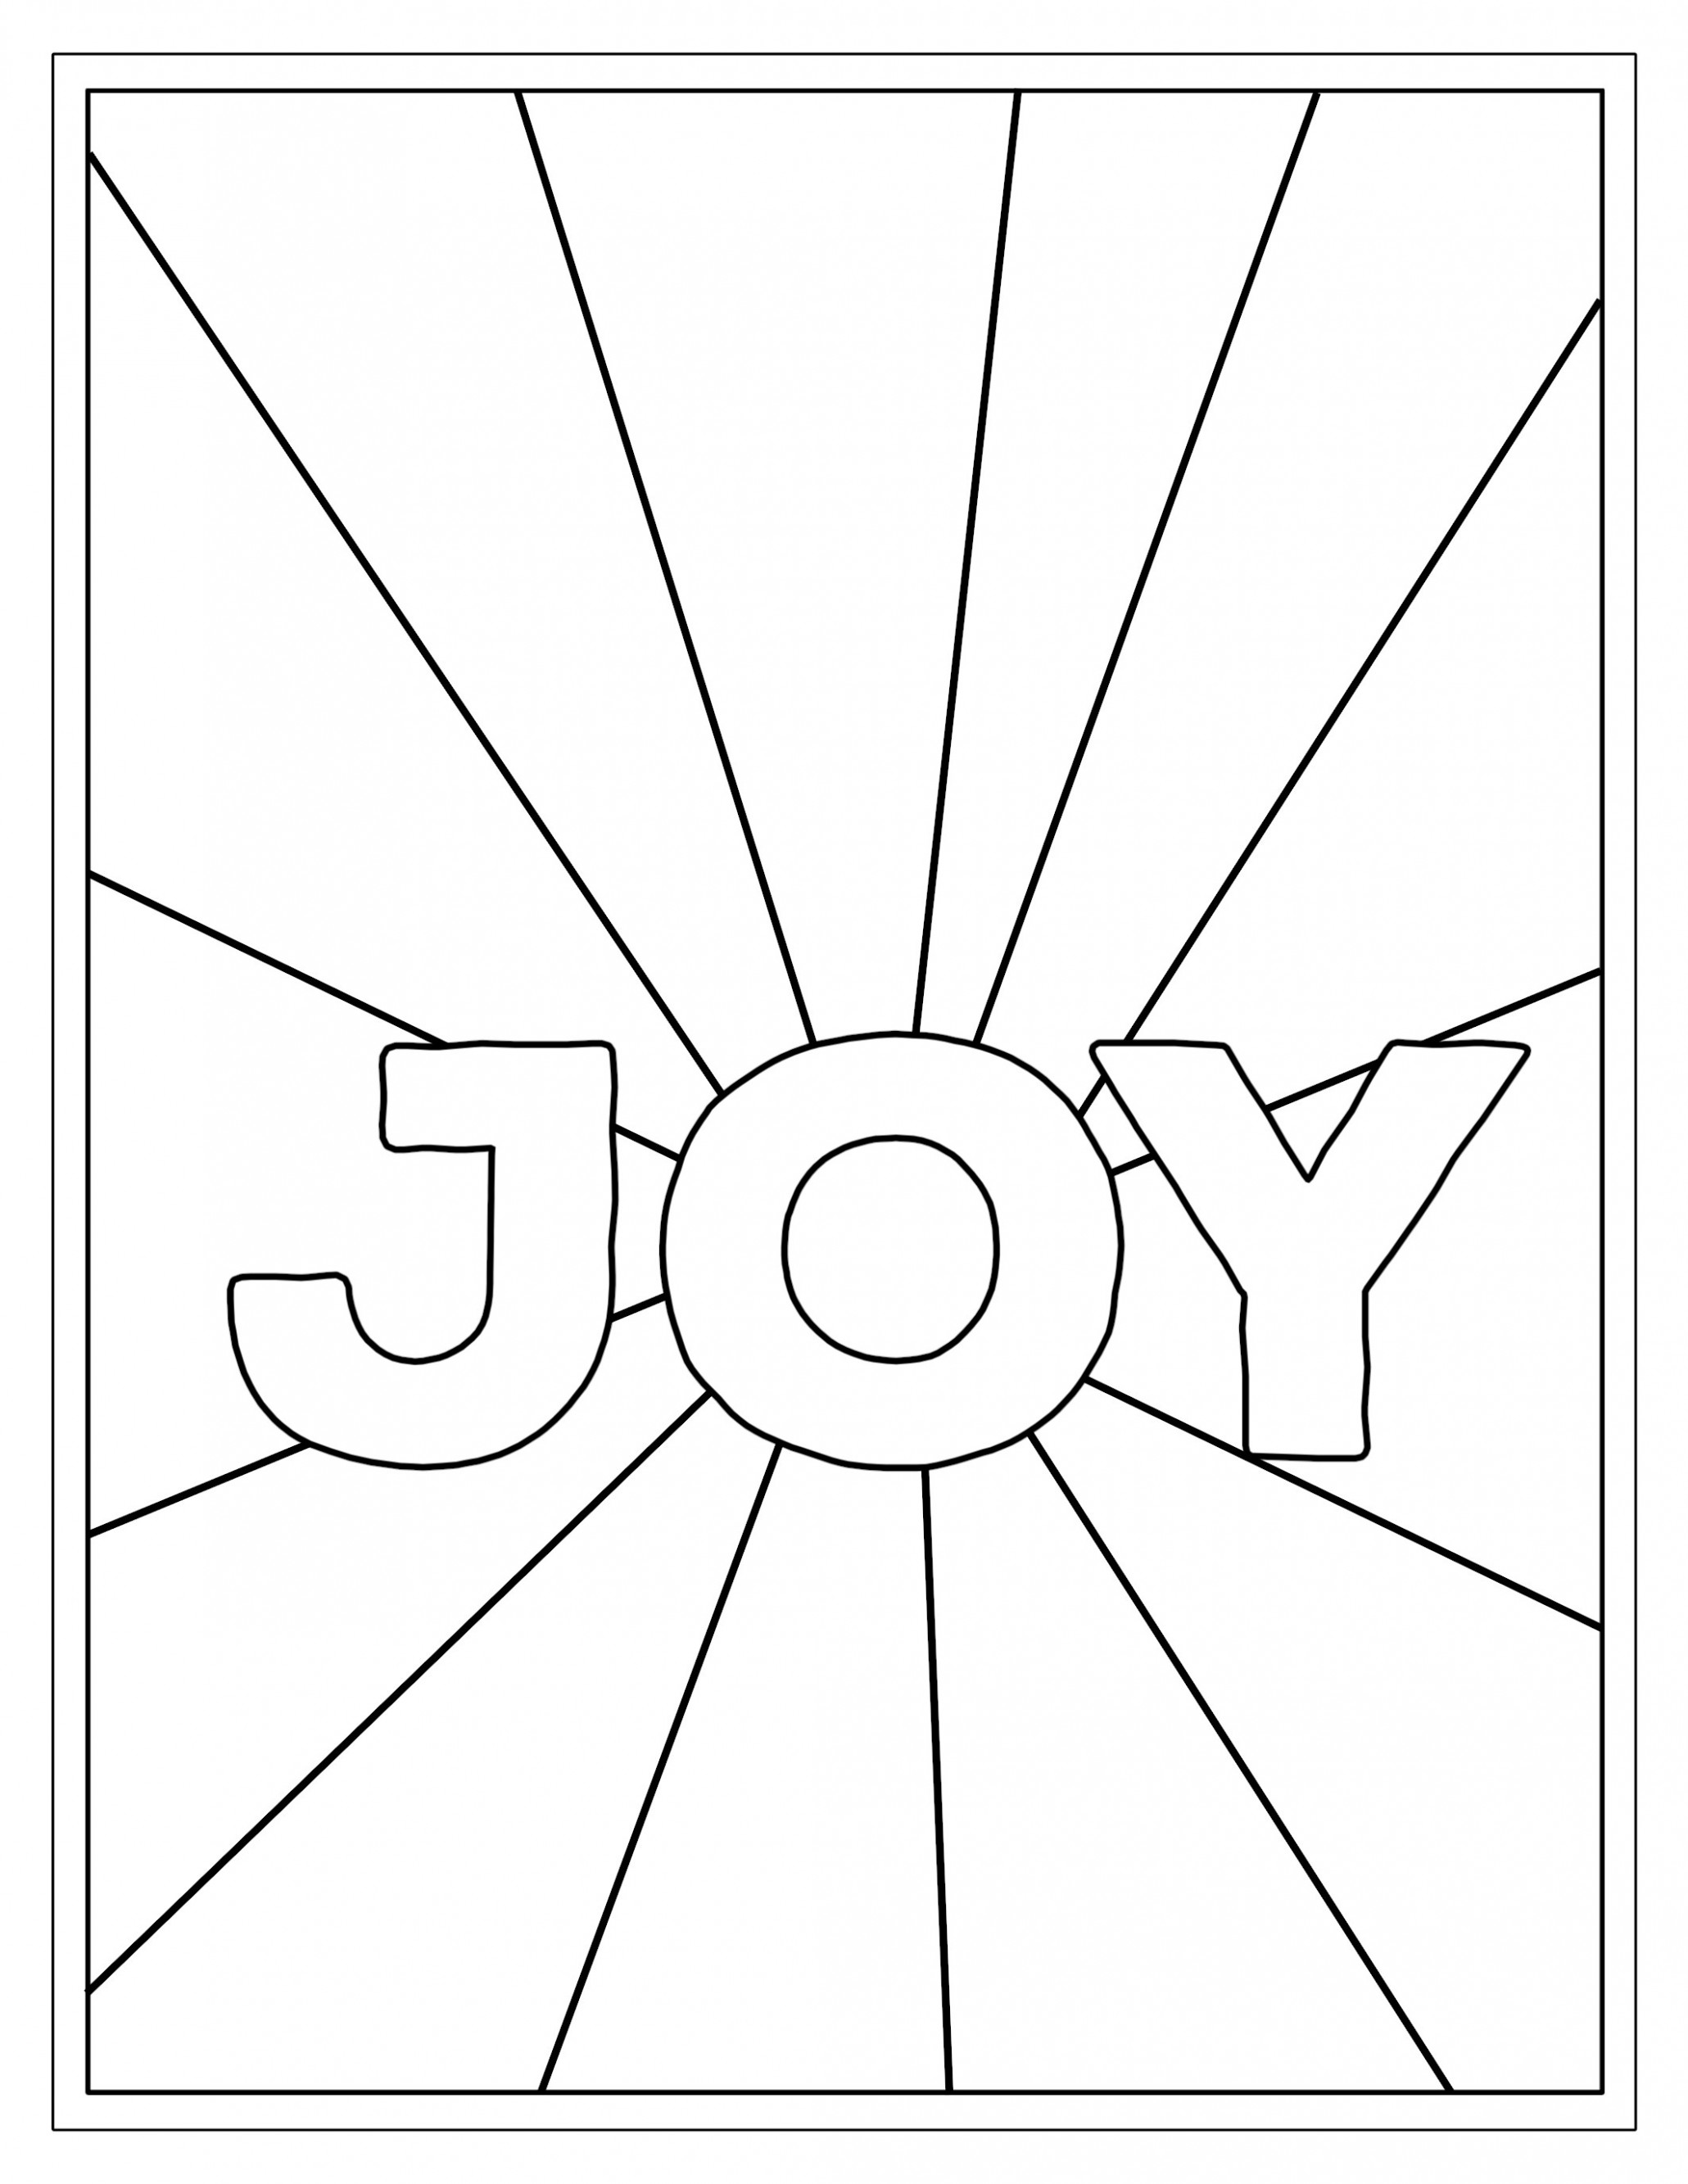 Free Printable Christmas Coloring Pages – Paper Trail Design – Christmas Joy Coloring Pages